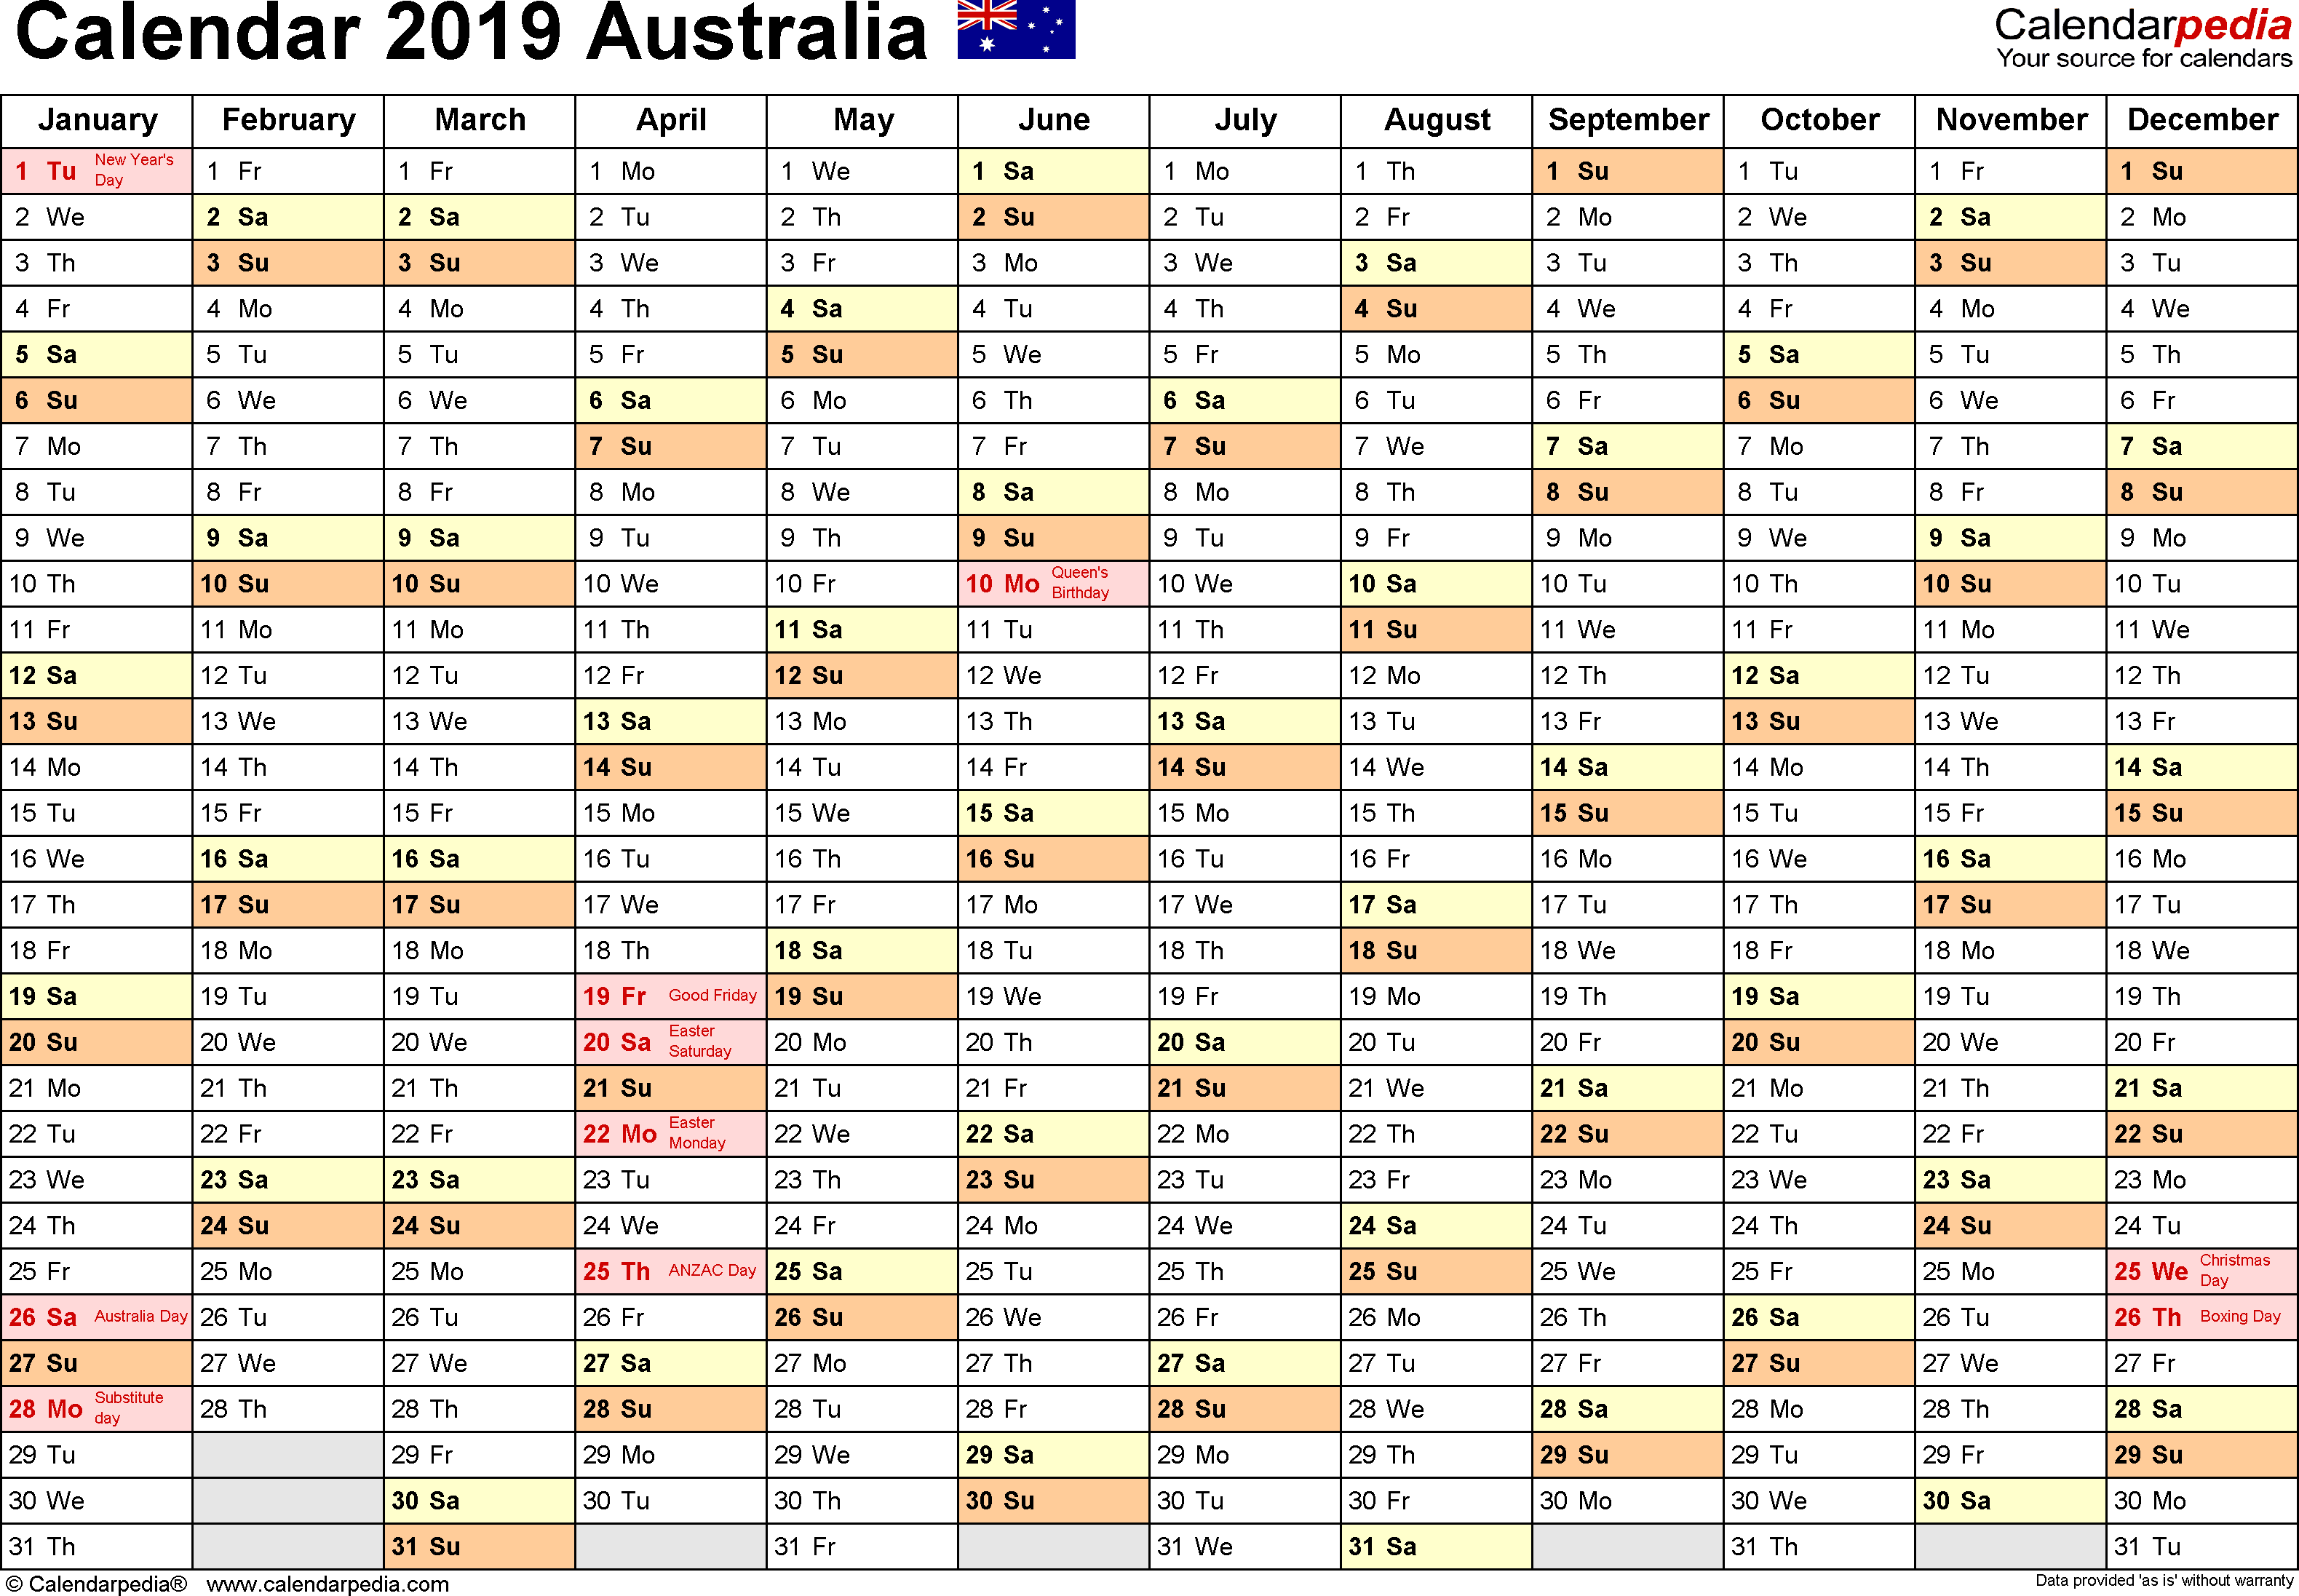 Download Template 2: Calendar 2019 Australia for Microsoft Word (.docx file), landscape, 1 page